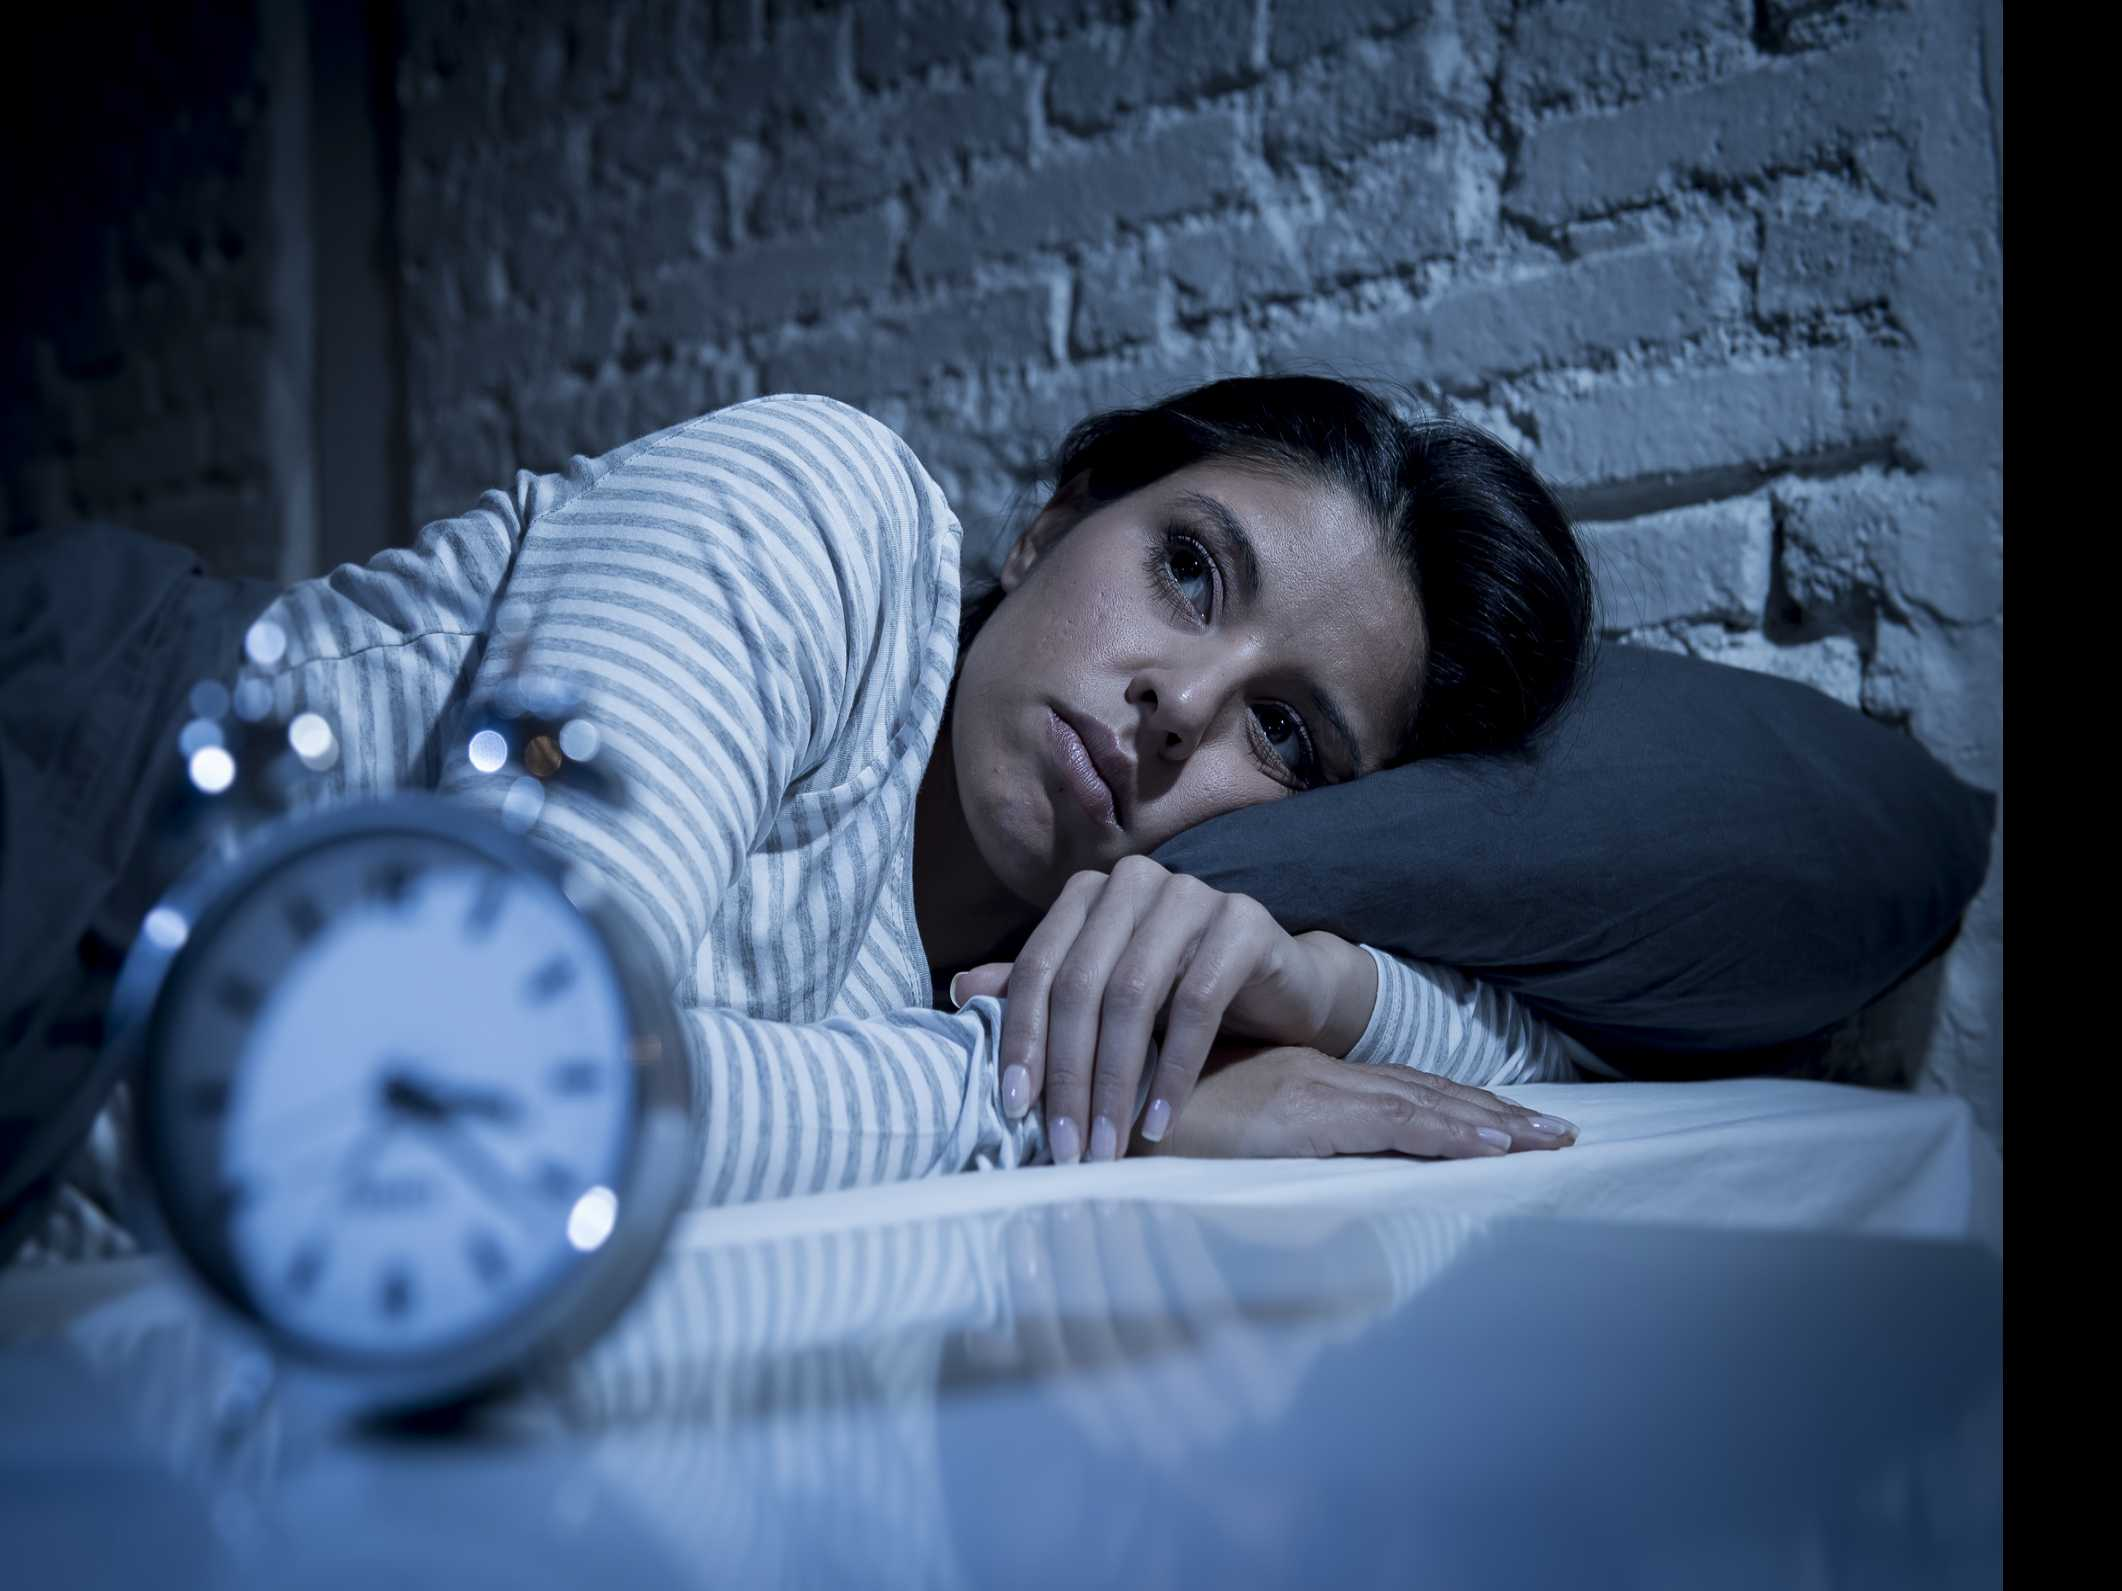 Is Poor Nutrition Keeping You Up at Night? Diet and Sleep Tips